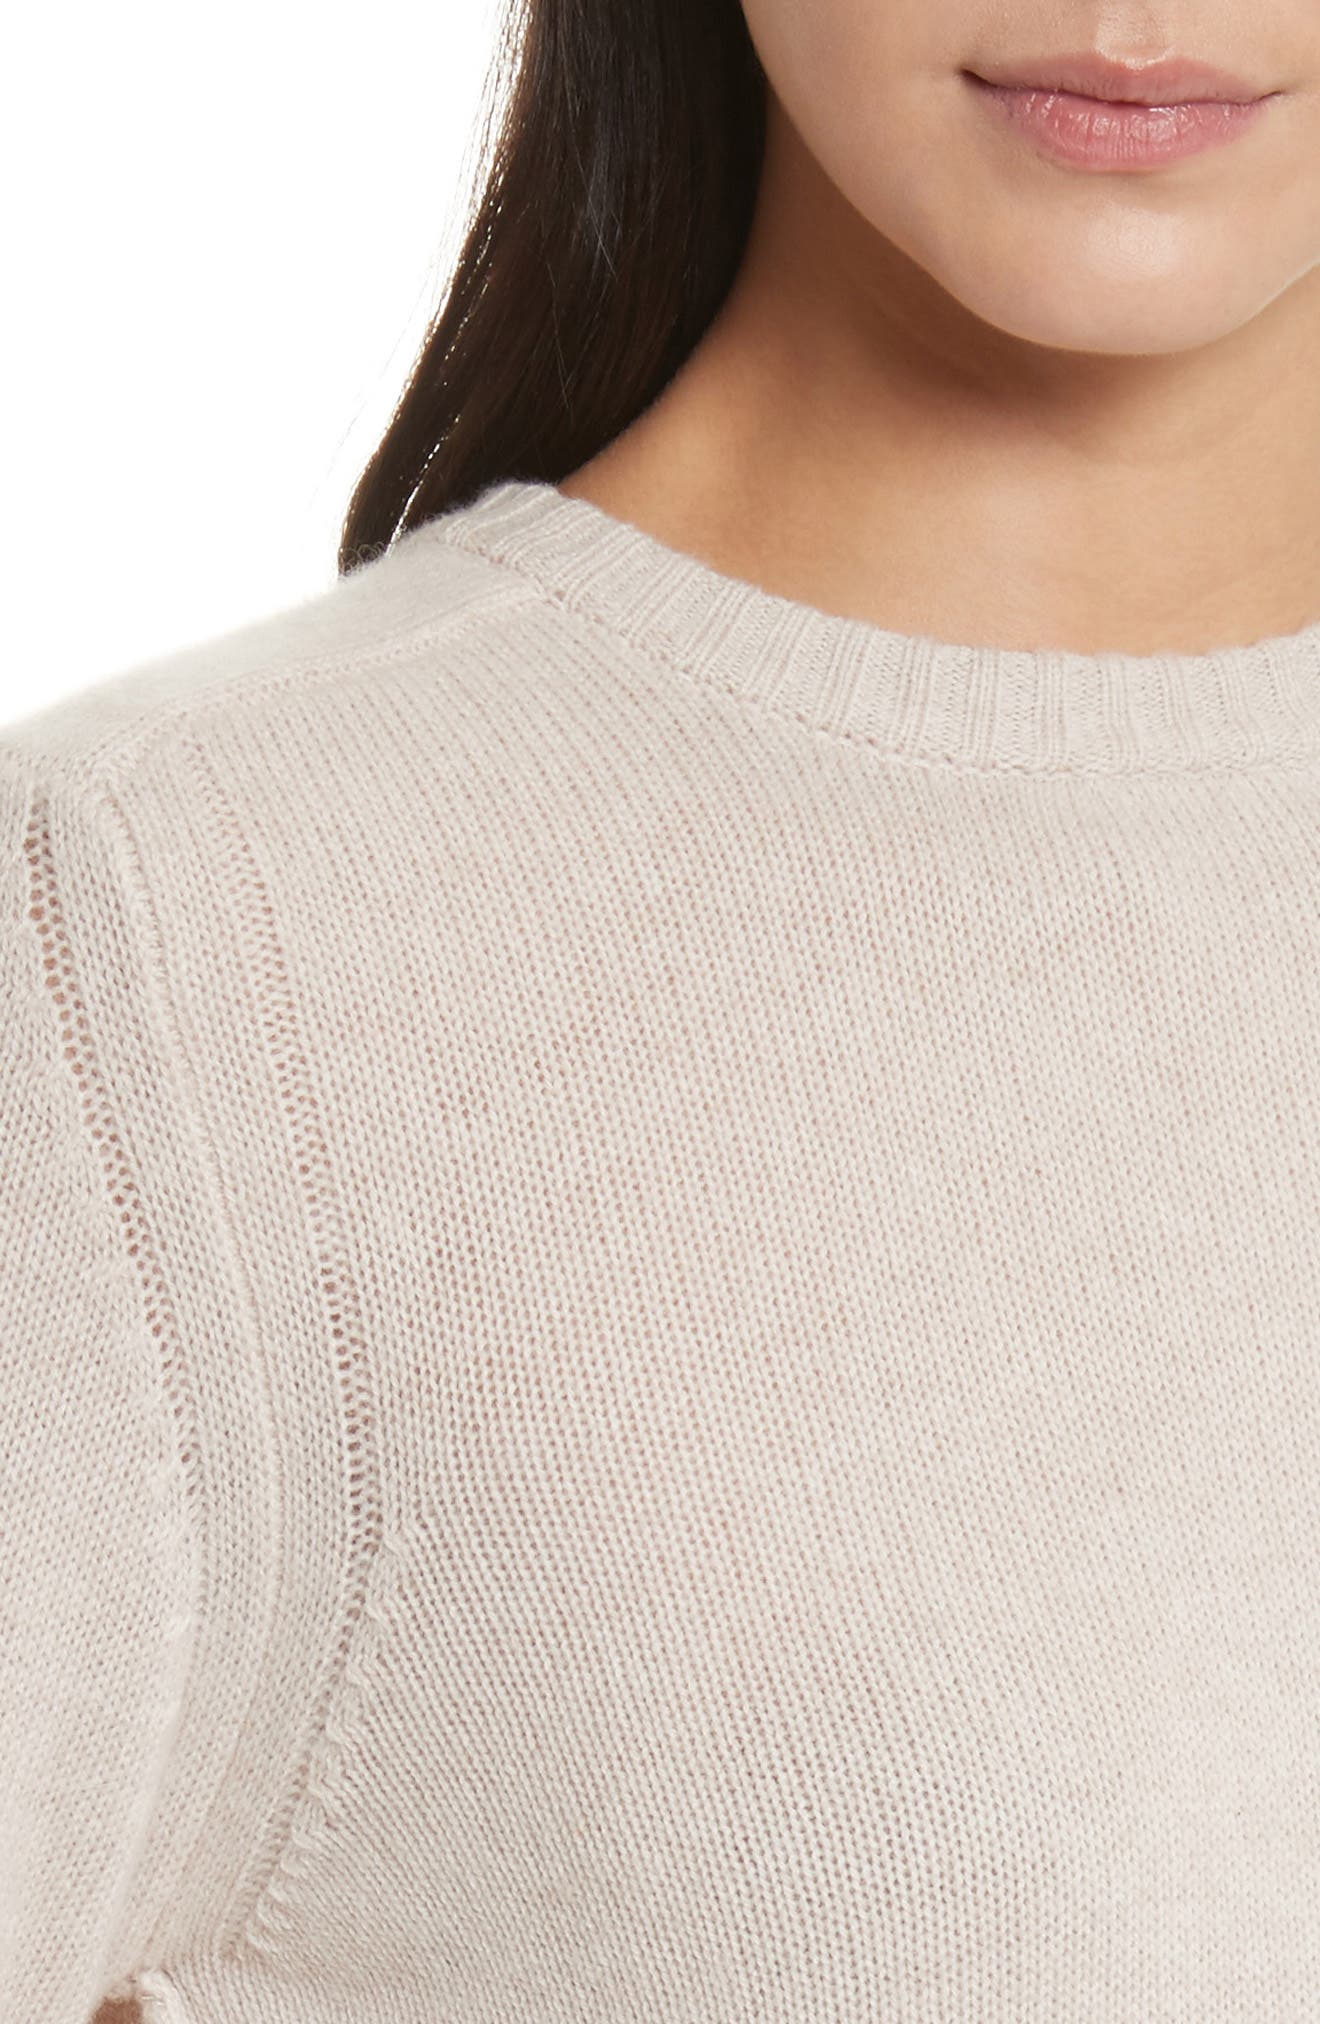 Keller Layered Sweater,                             Alternate thumbnail 4, color,                             012